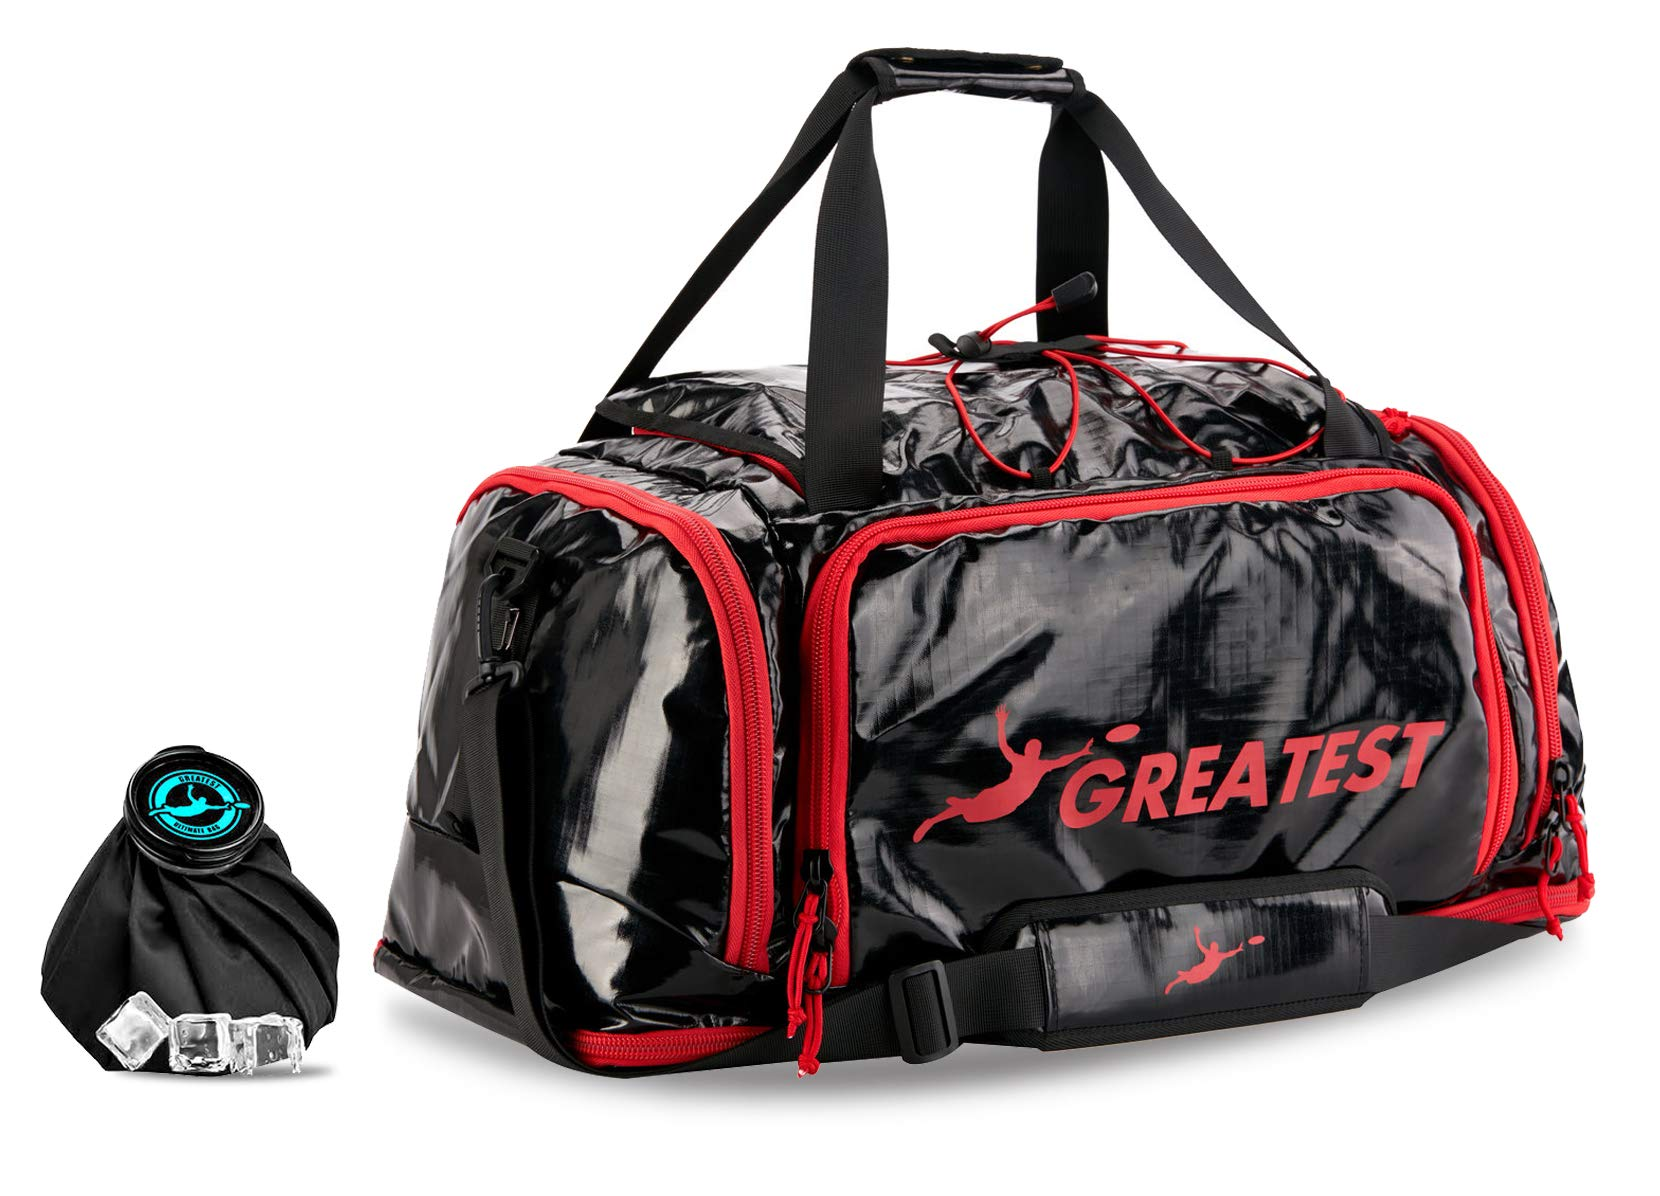 GREATEST Ultimate Bag 60 Liter - #1 World's Ultimate Frisbee Bag. Built in Insulated Cooler Compartment and Organization System. Also Perfect Sports Duffel Bag for Other Outdoor Sports - Red by GREATEST